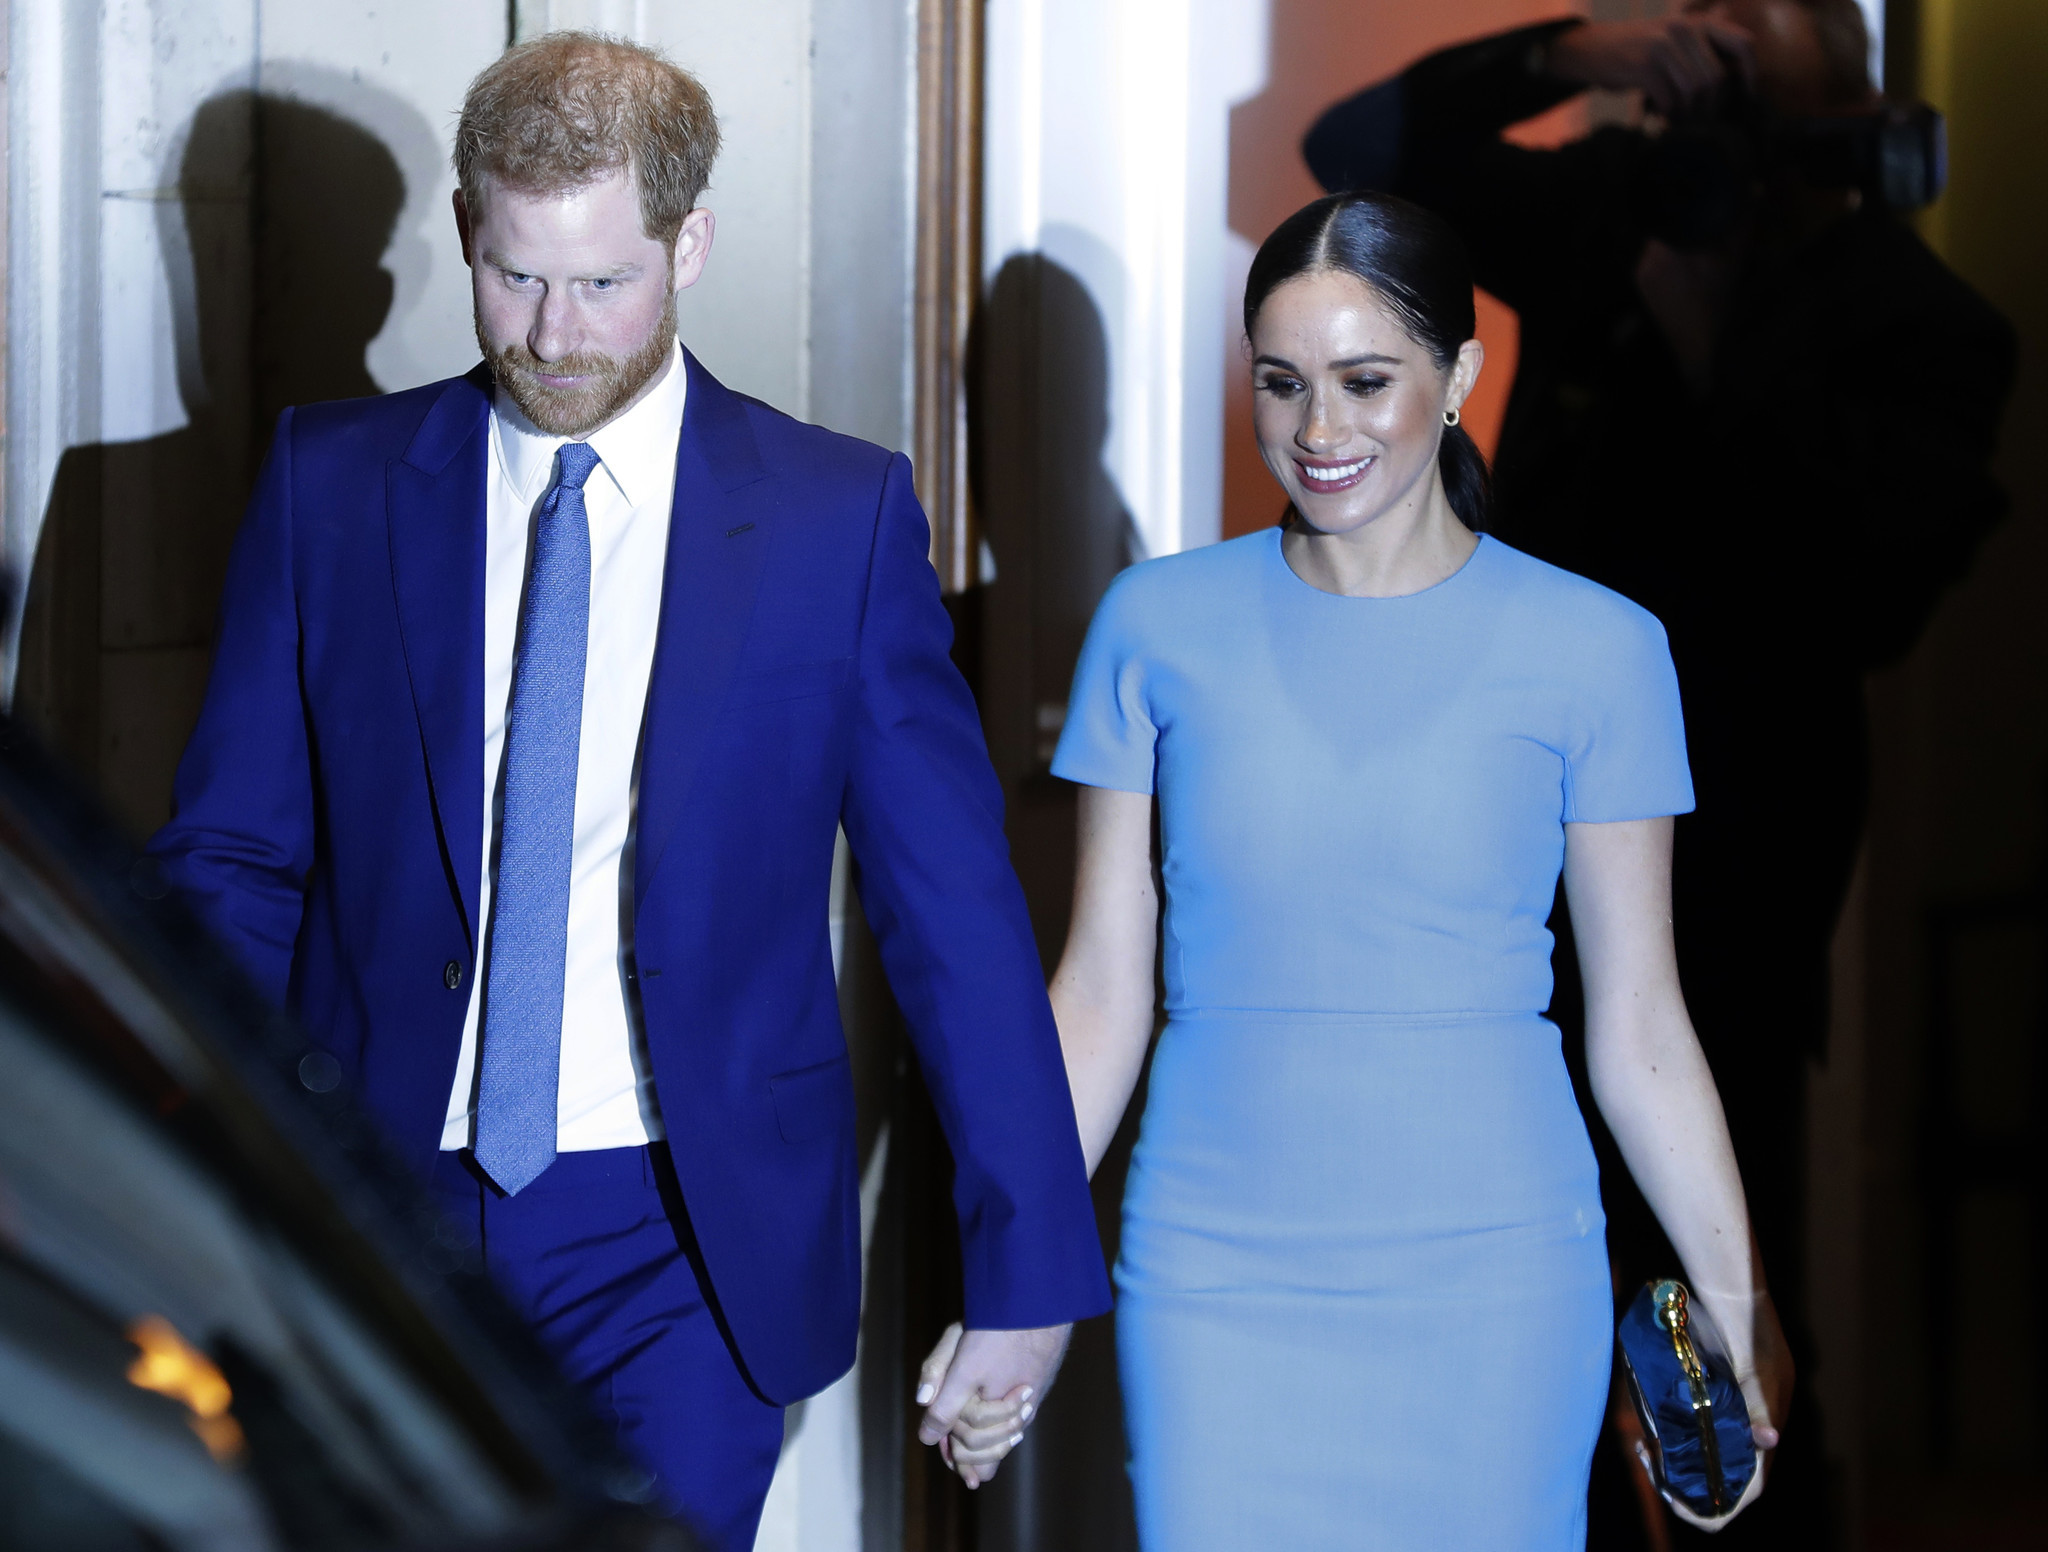 Meghan Markle, Prince Harry left Archie in Canada amid coronavirus concerns